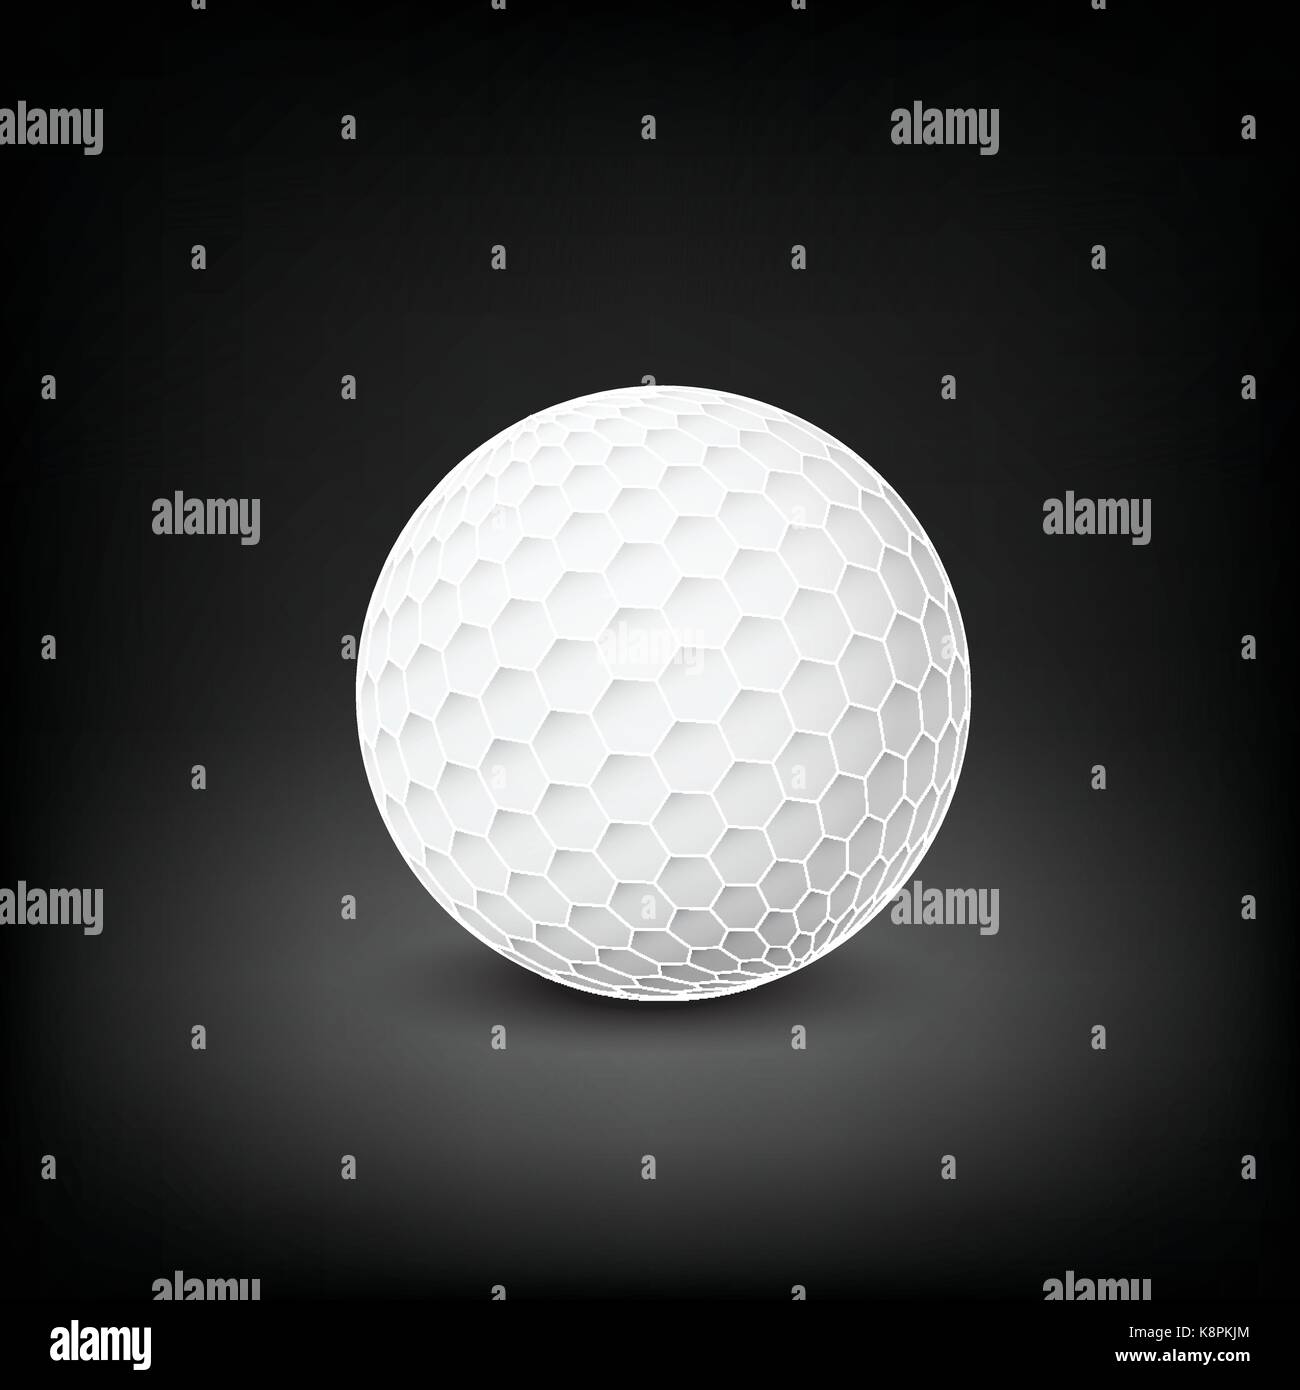 Golfball realistic vector. Image of single golf equipment, ball.  illustration isolated on dark mesh  background. - Stock Image